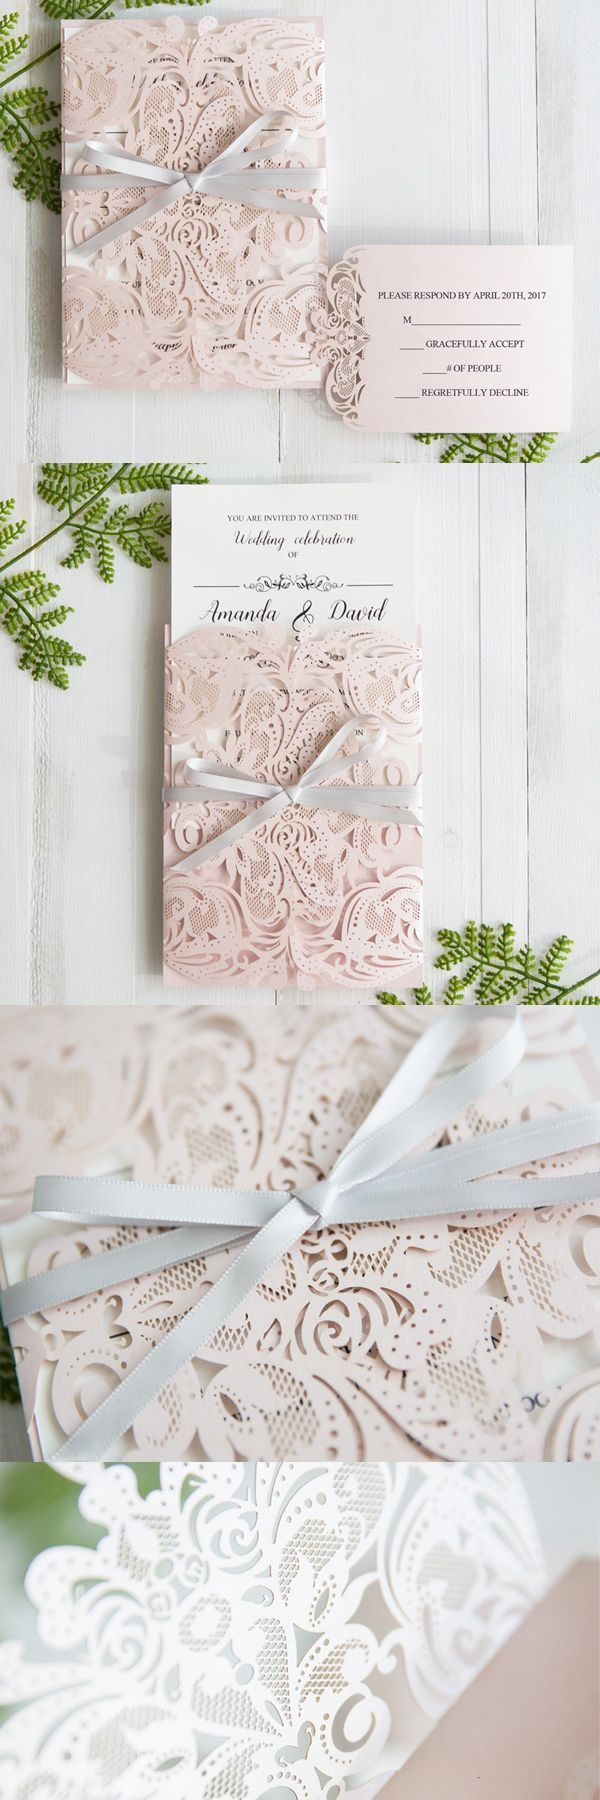 custom wedding invitations nashville%0A Latest Wedding Invitations and Bridesmaid Dresses Collection      from  Stylish Wedd